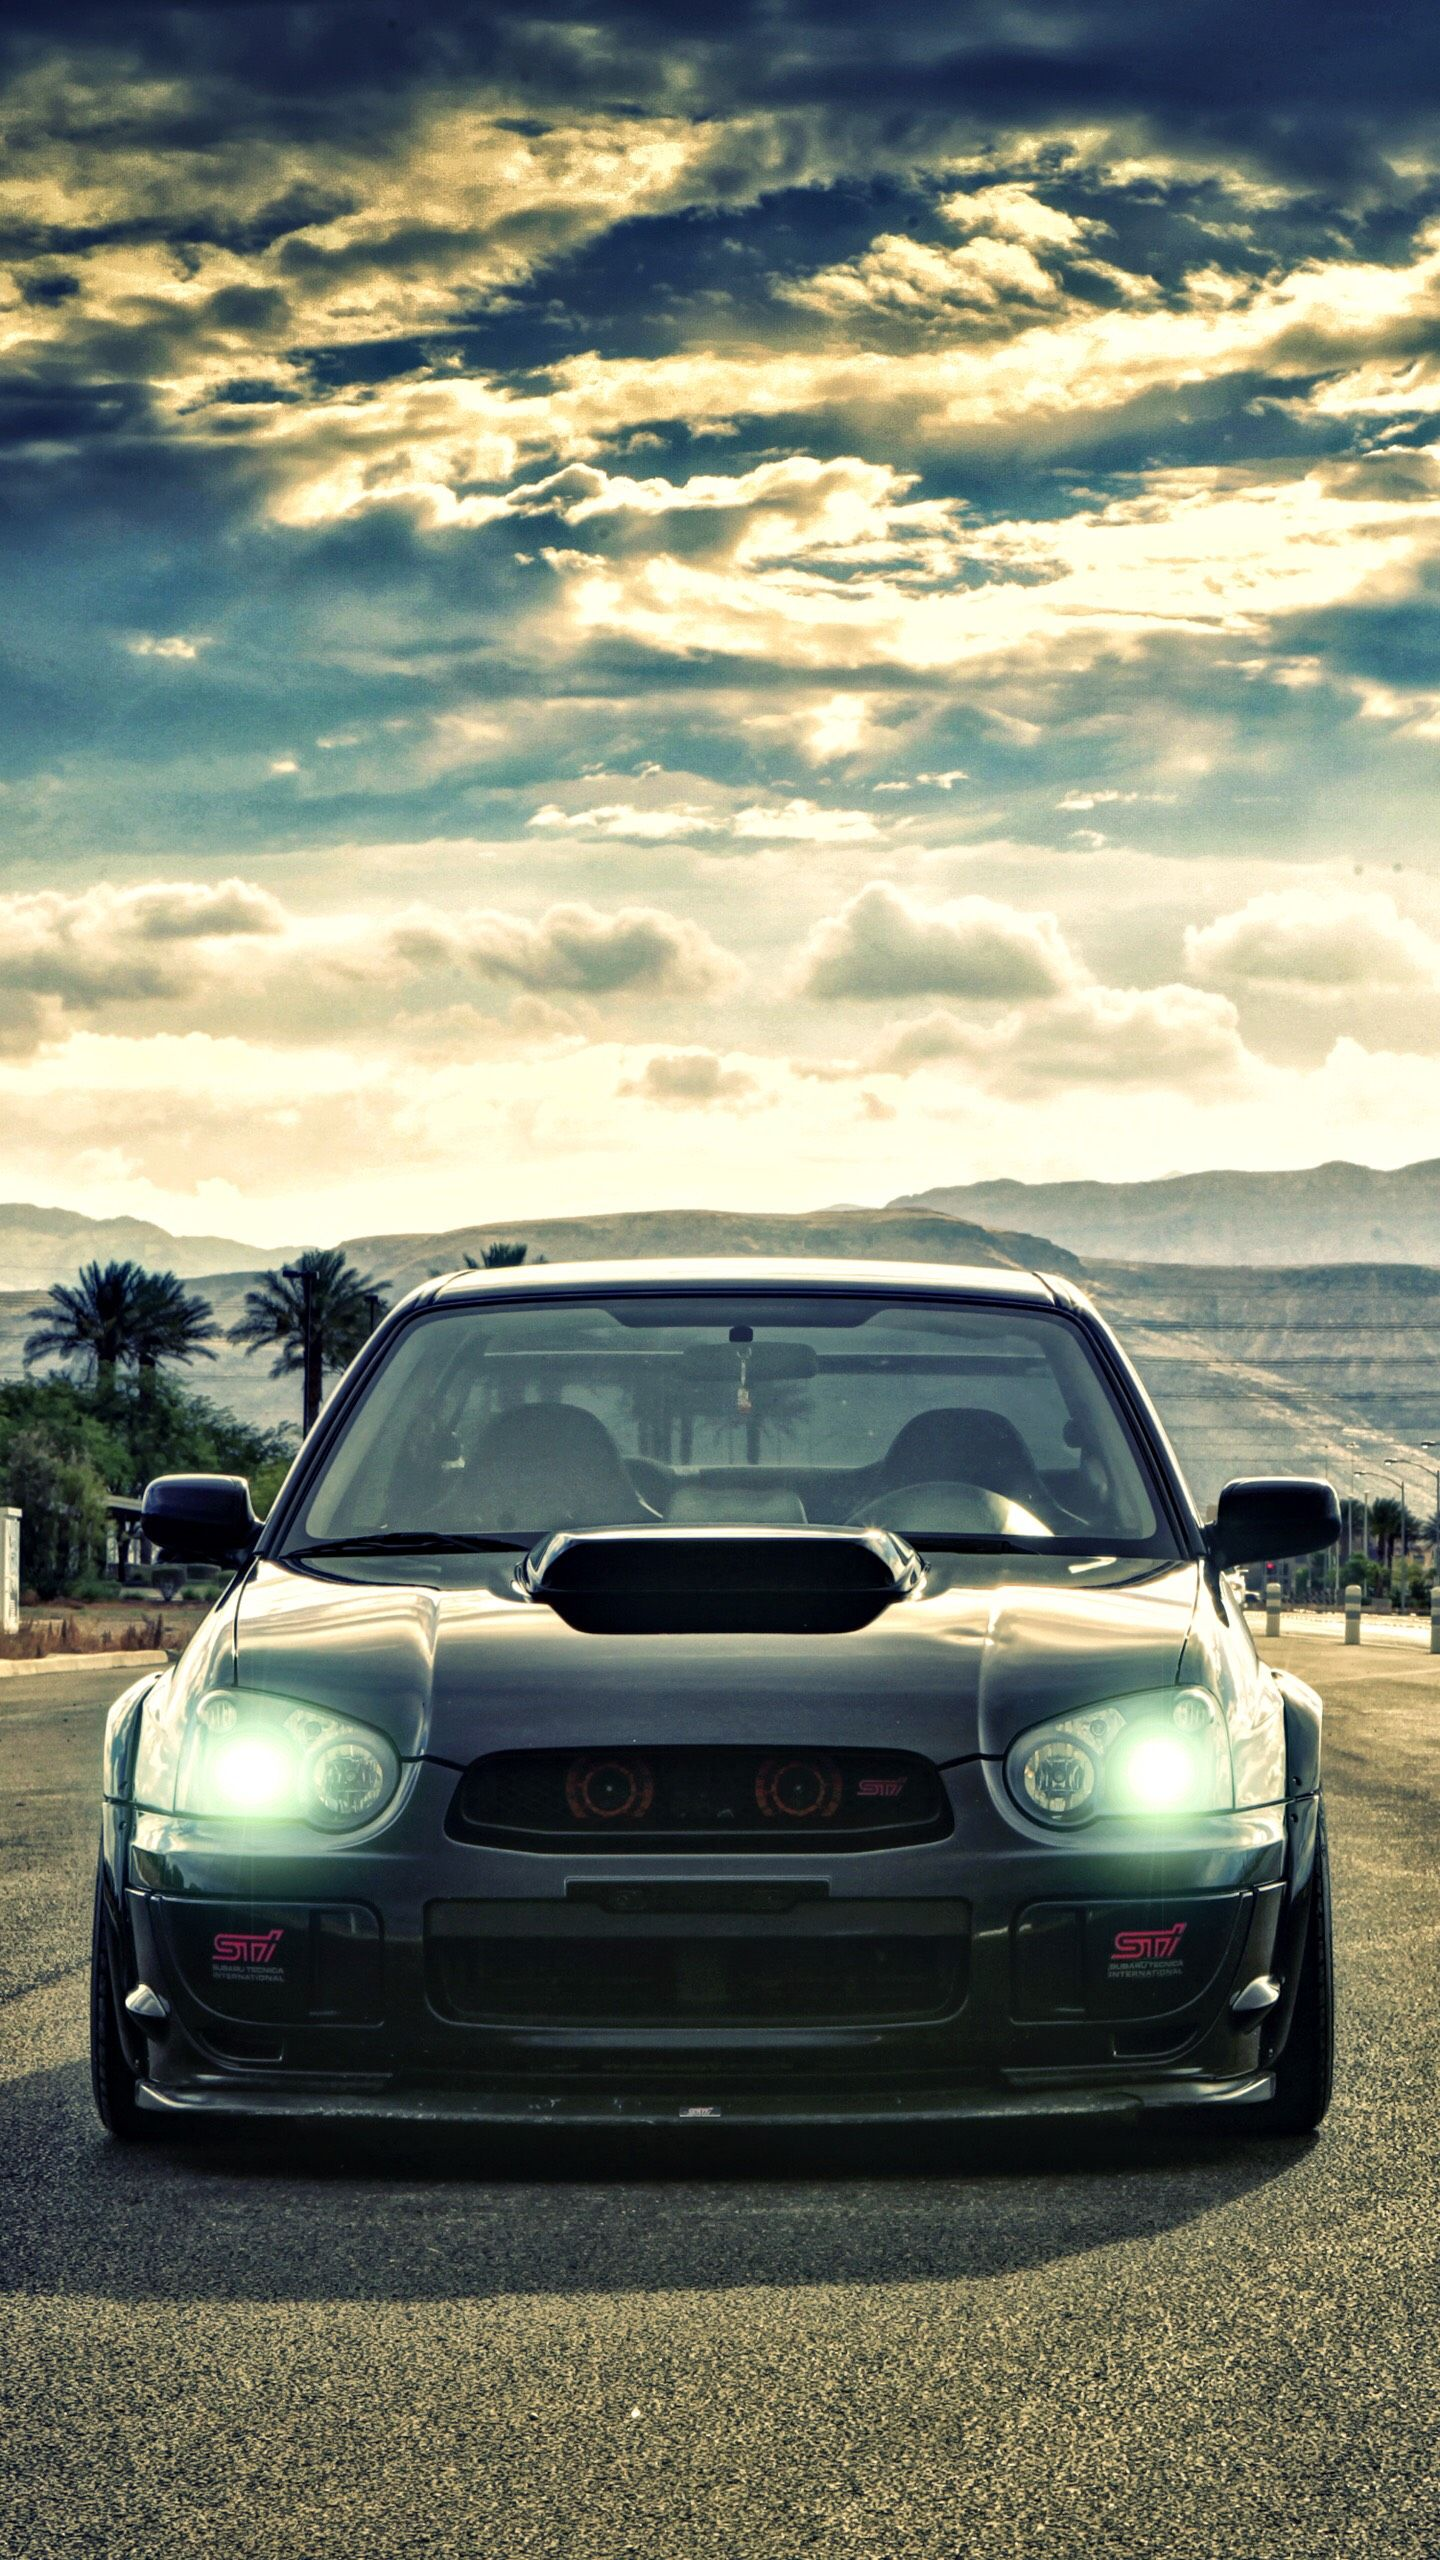 Blobeye Subaru Wallpapers Top Free Blobeye Subaru Backgrounds